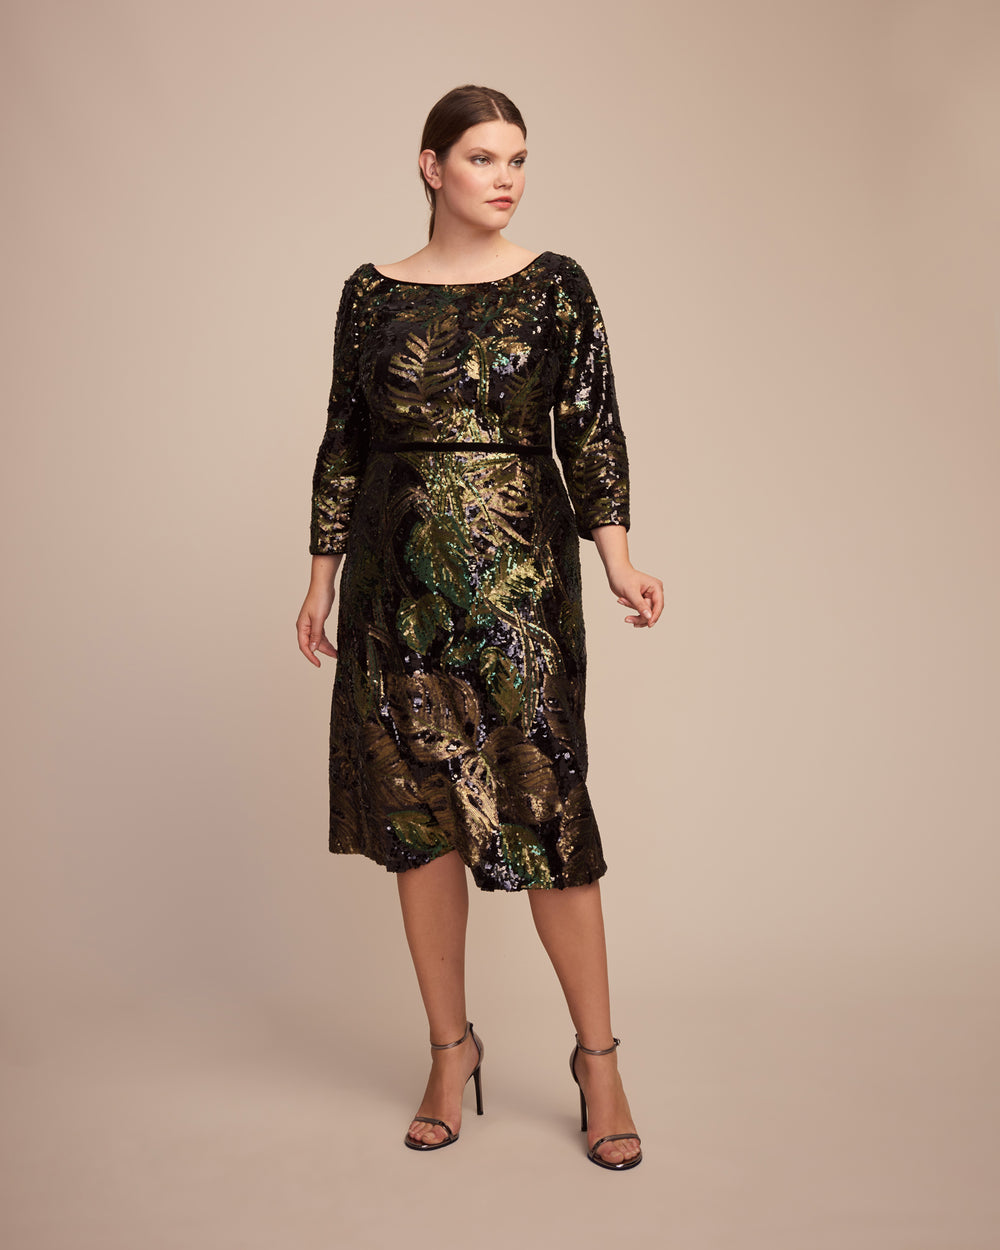 0b4ecbed30c Marchesa Notte Black Sequin Tea-Length Cocktail Dress – 11 Honoré